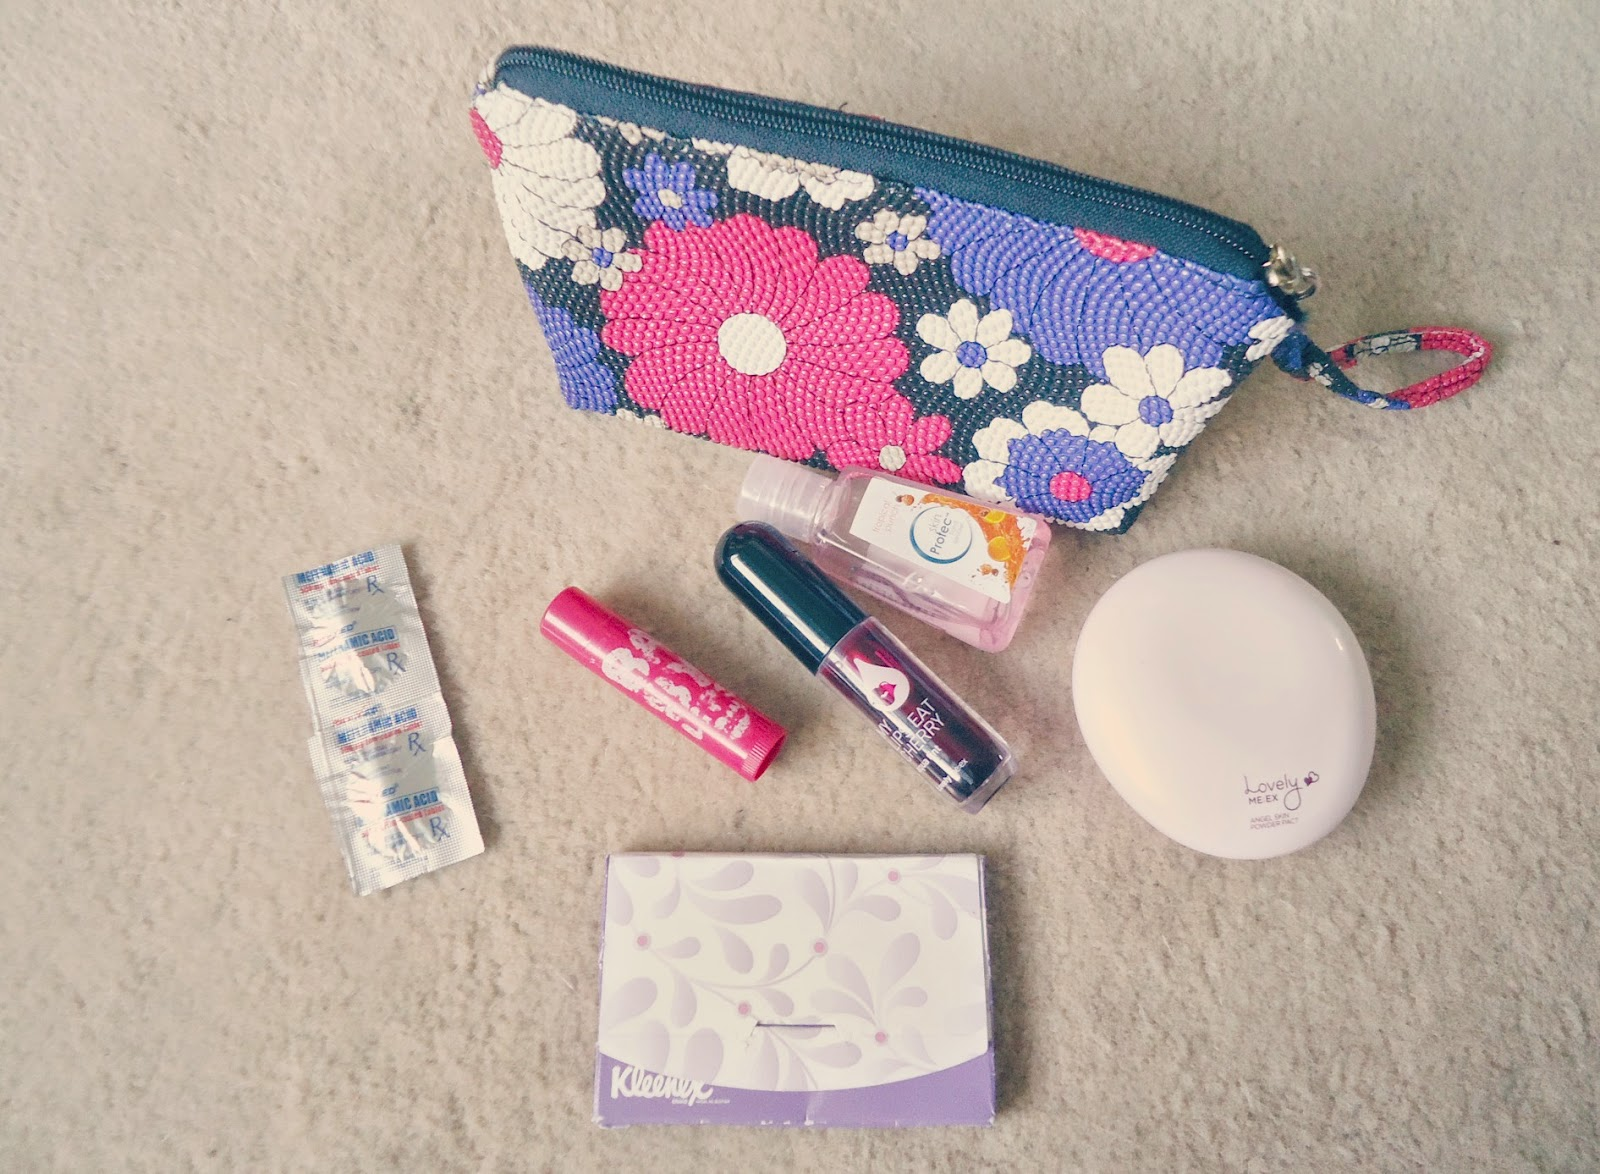 Emergency bag, Make up bag, Liptint, Cheektint, Powder, Sanitizer, beauty, blogger, maybelline babylips, the face shop, Kleenex oil blotting film,